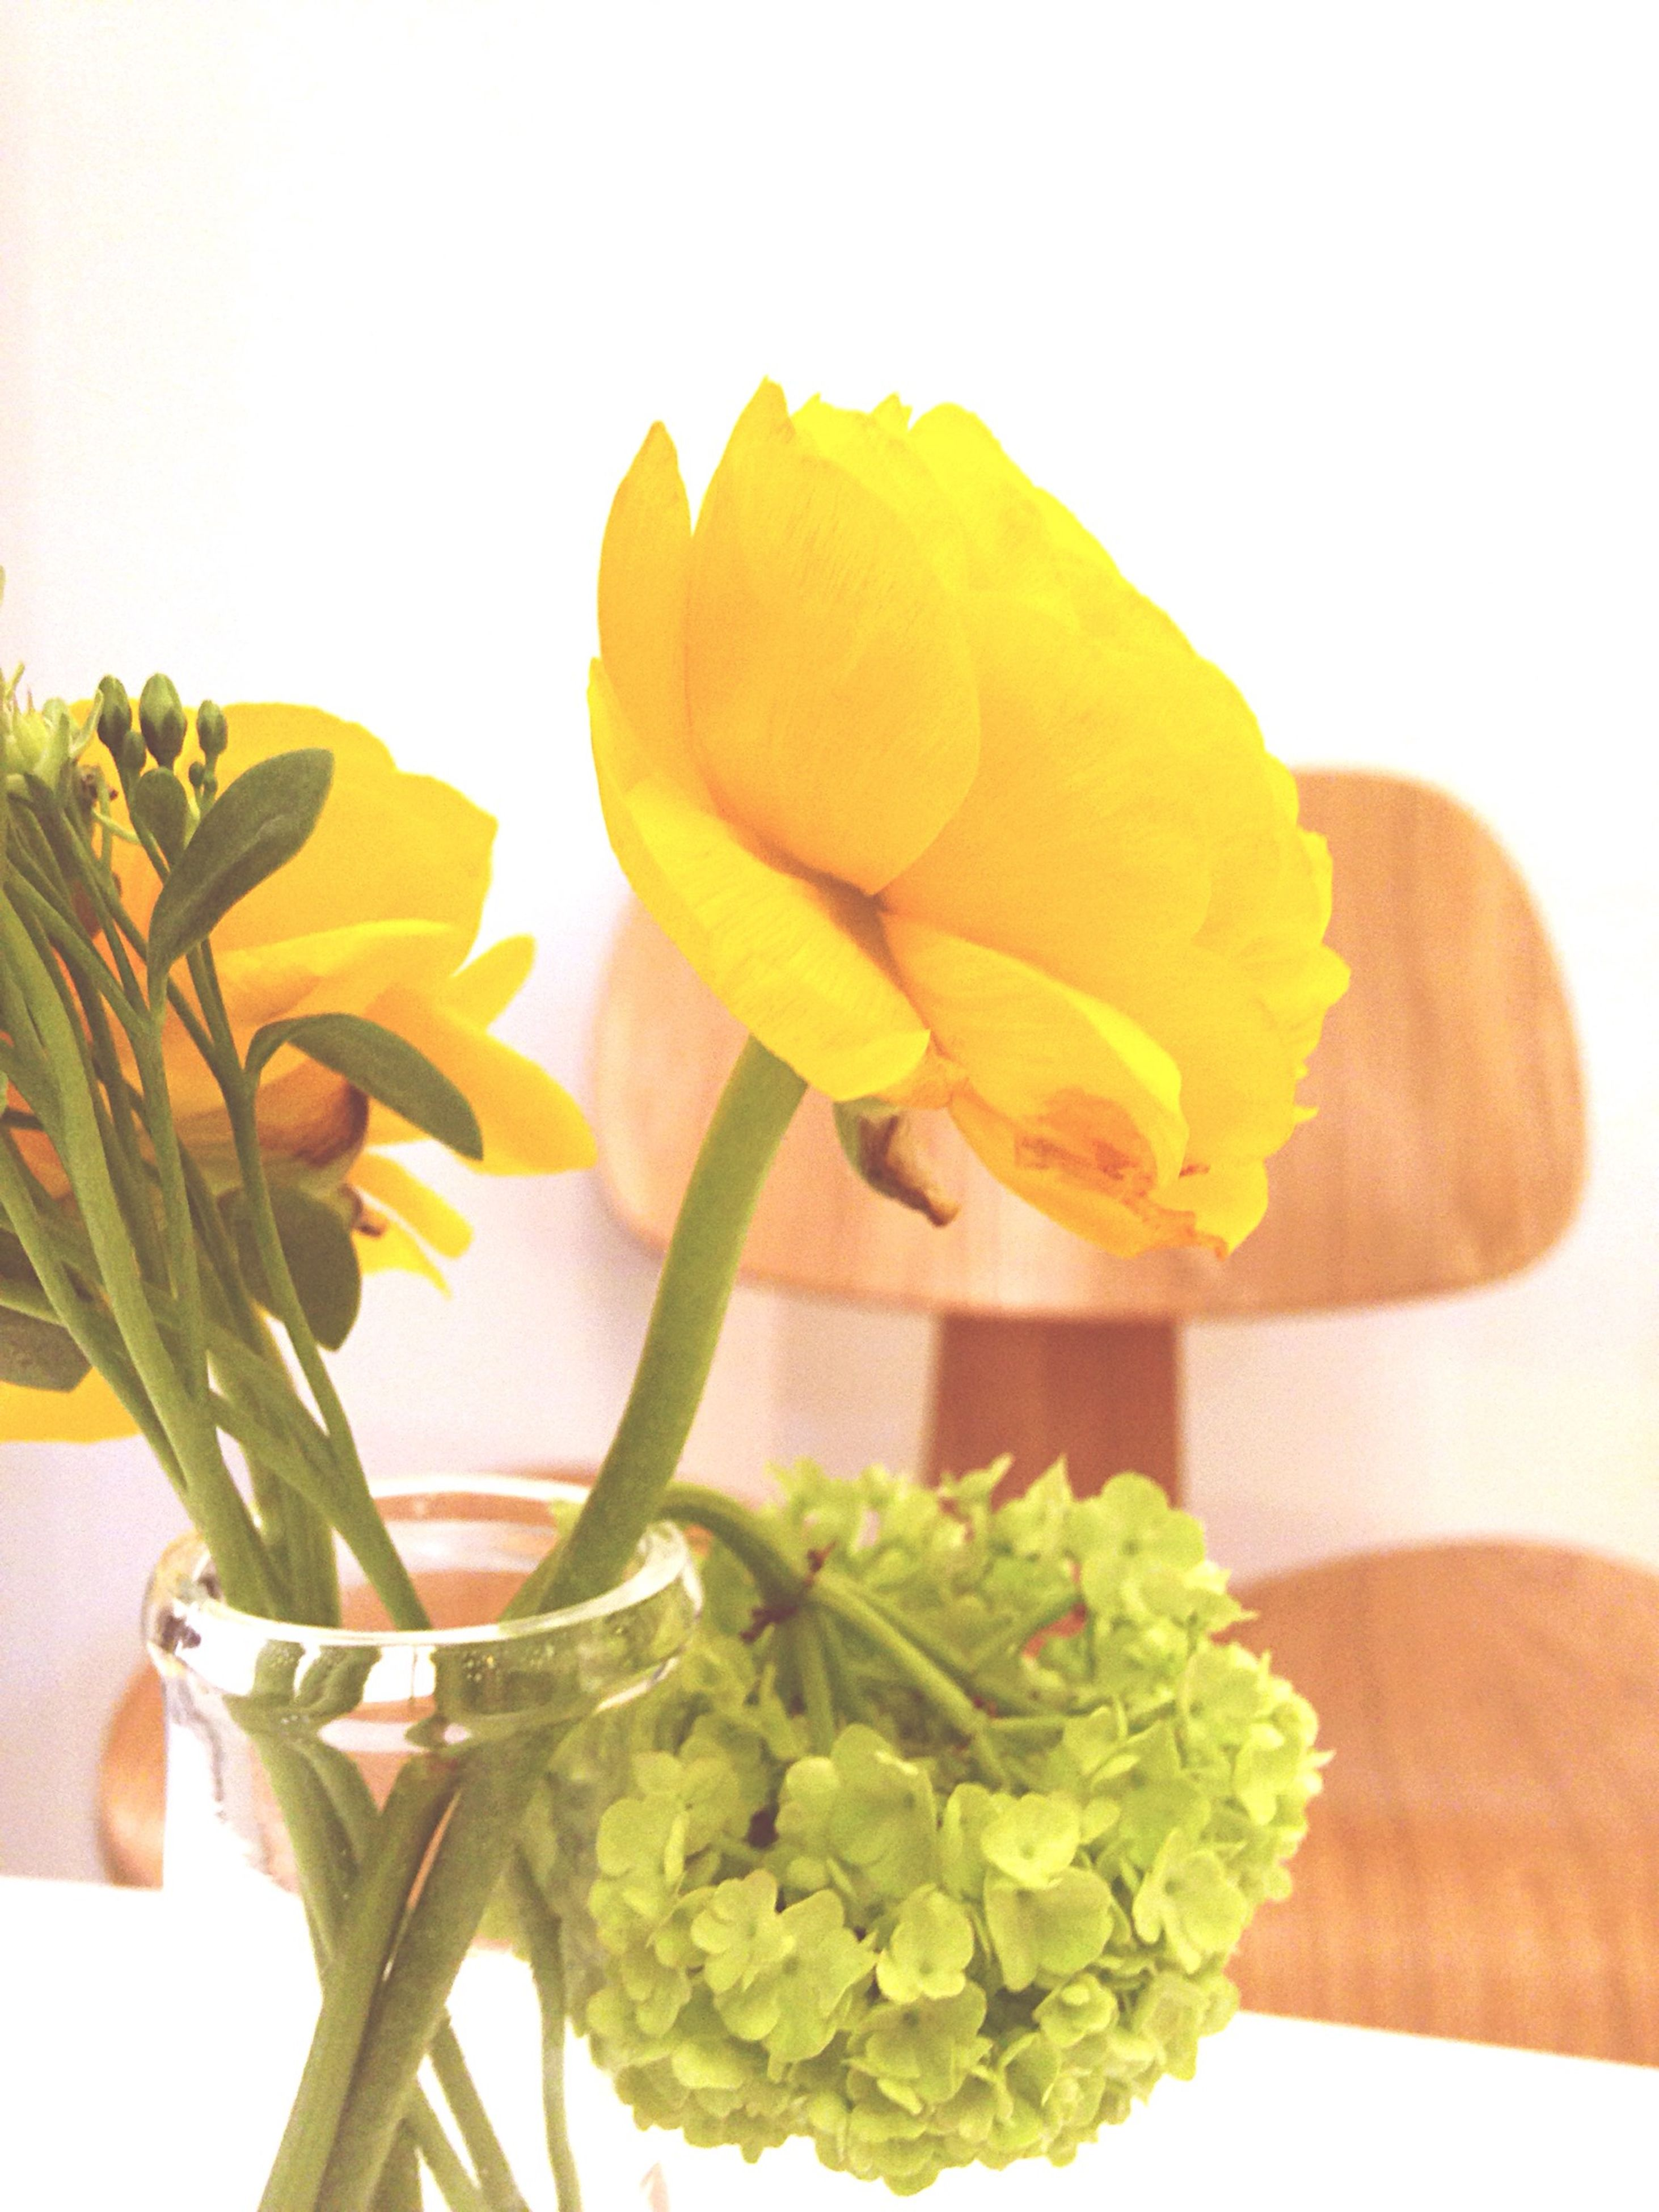 flower, freshness, yellow, indoors, fragility, leaf, petal, table, vase, close-up, plant, white background, flower head, stem, beauty in nature, growth, nature, potted plant, studio shot, rose - flower